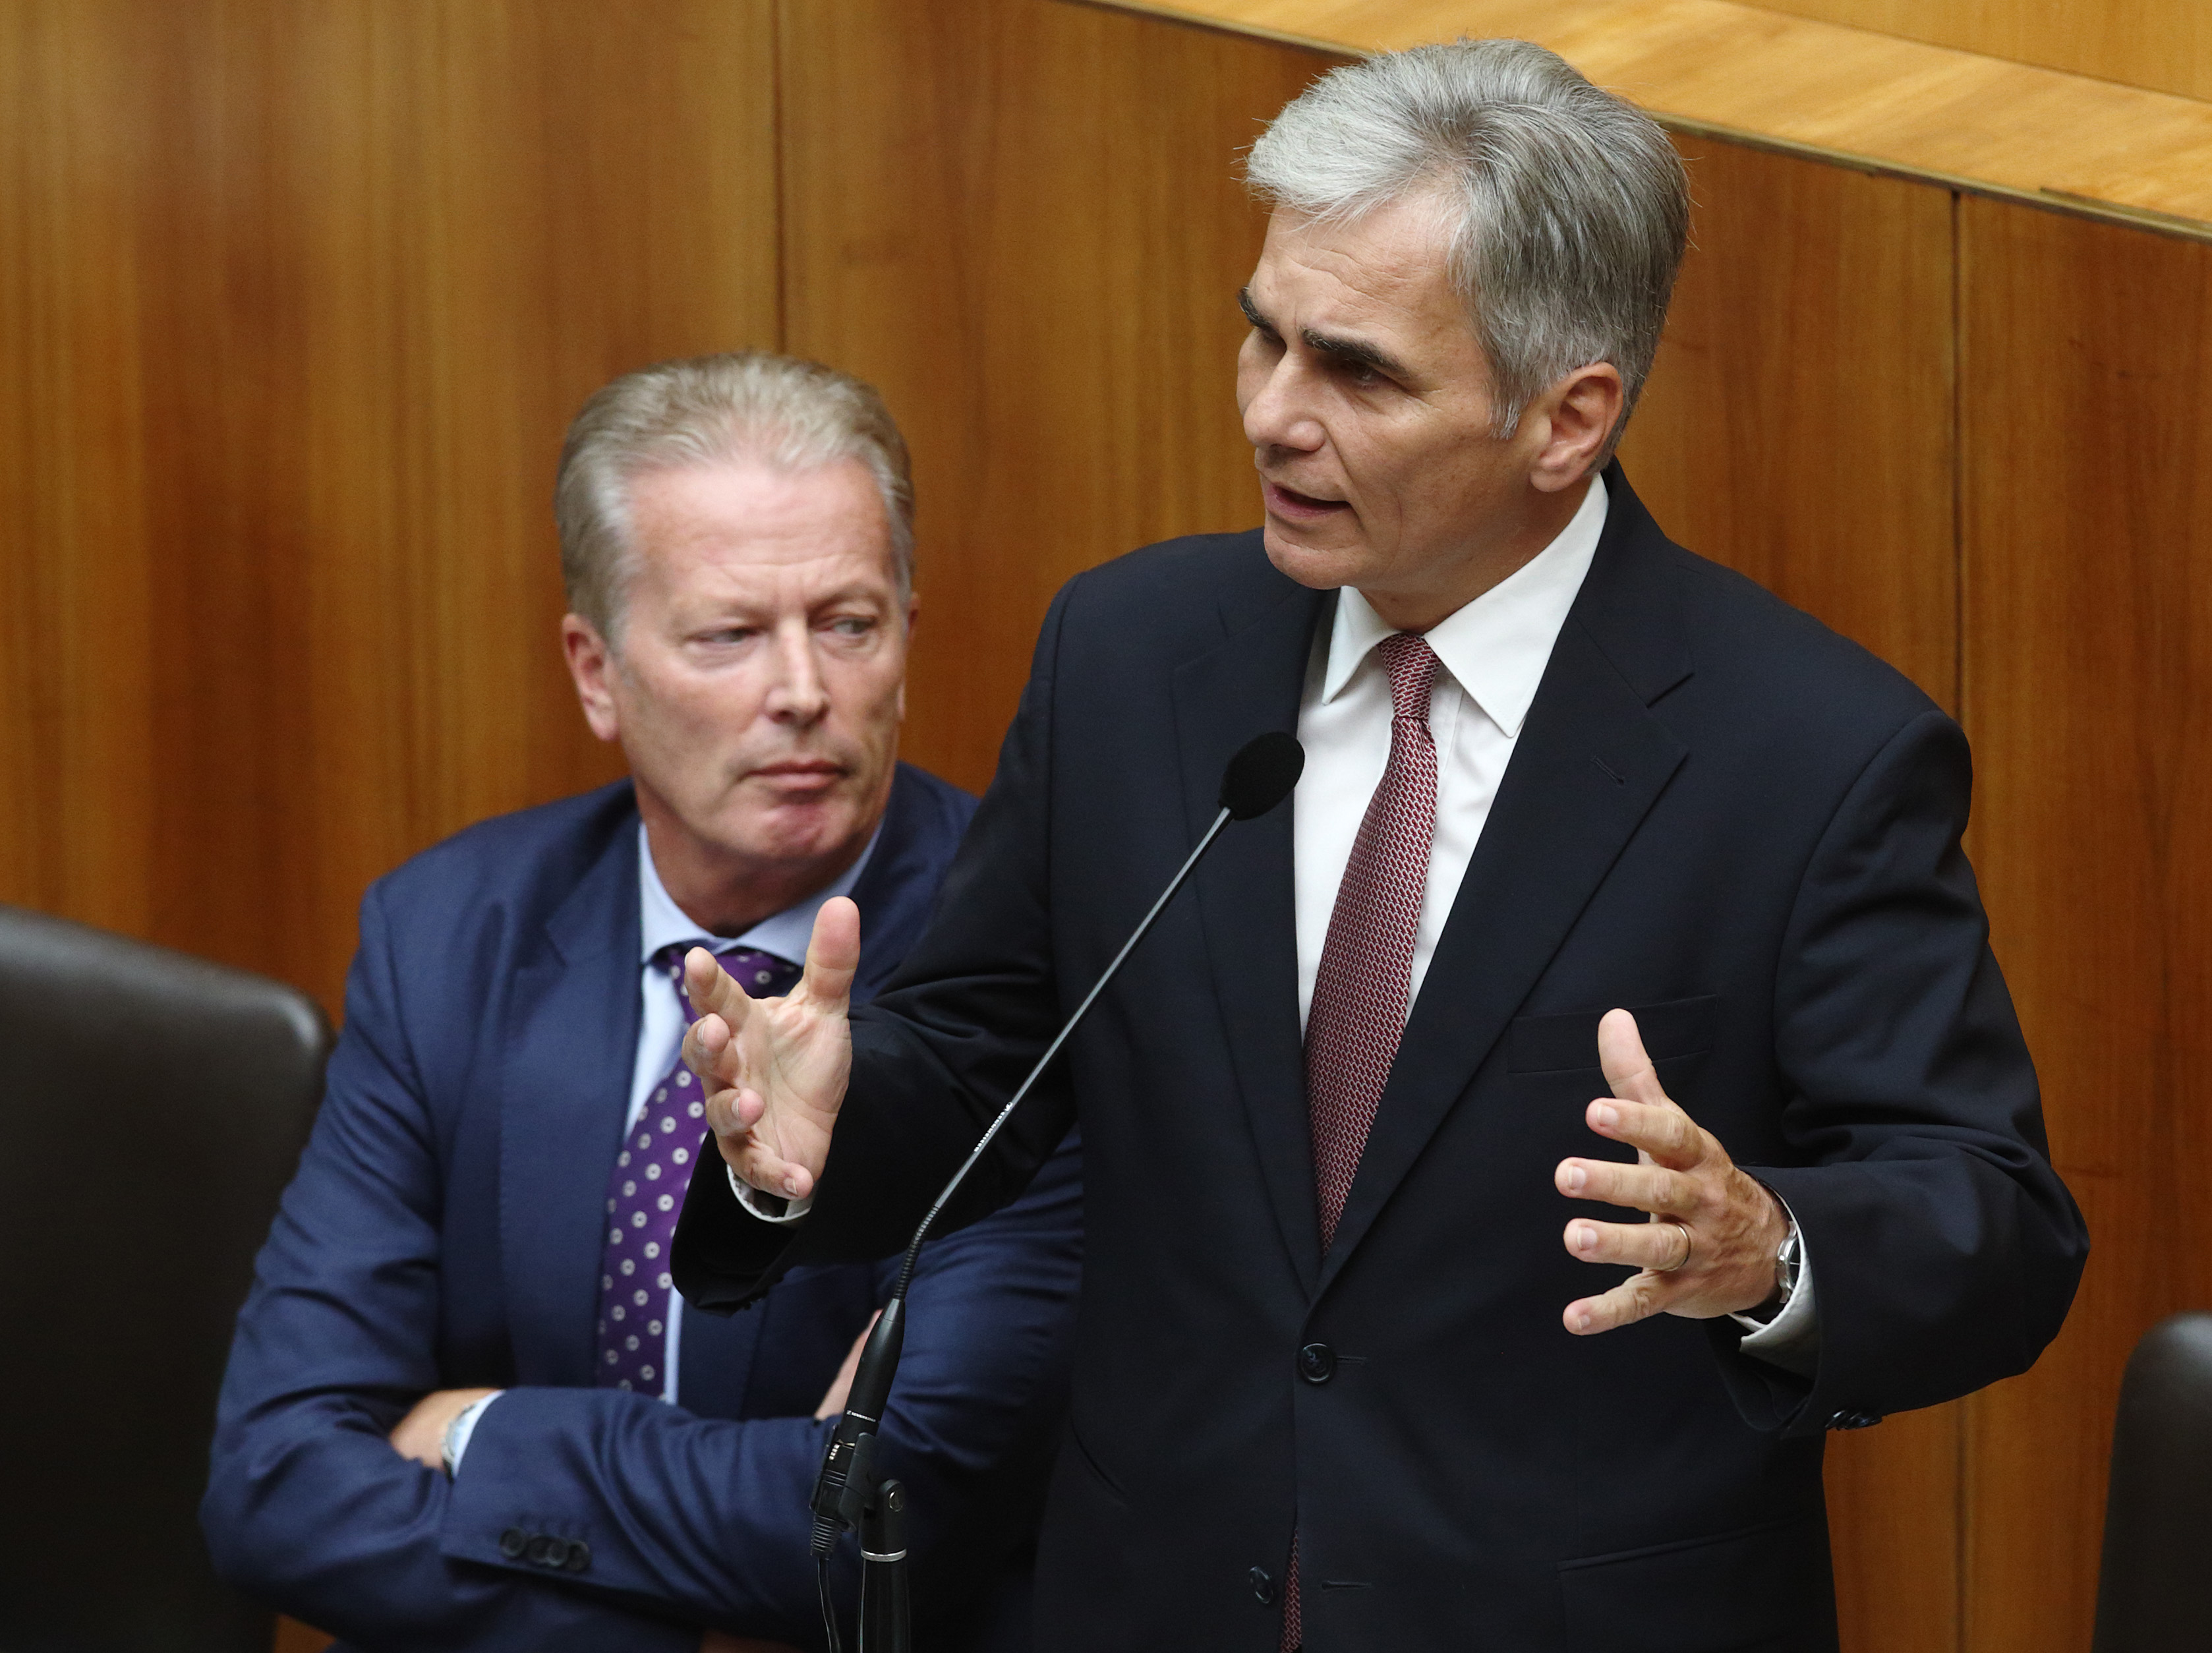 Austrian Chancellor Werner Faymann (R) talks next to Vice Chancellor Reinhold Mitterlehner during an extraordinary session of the parliament on migration policy in Vienna on Sept. 1, 2015.